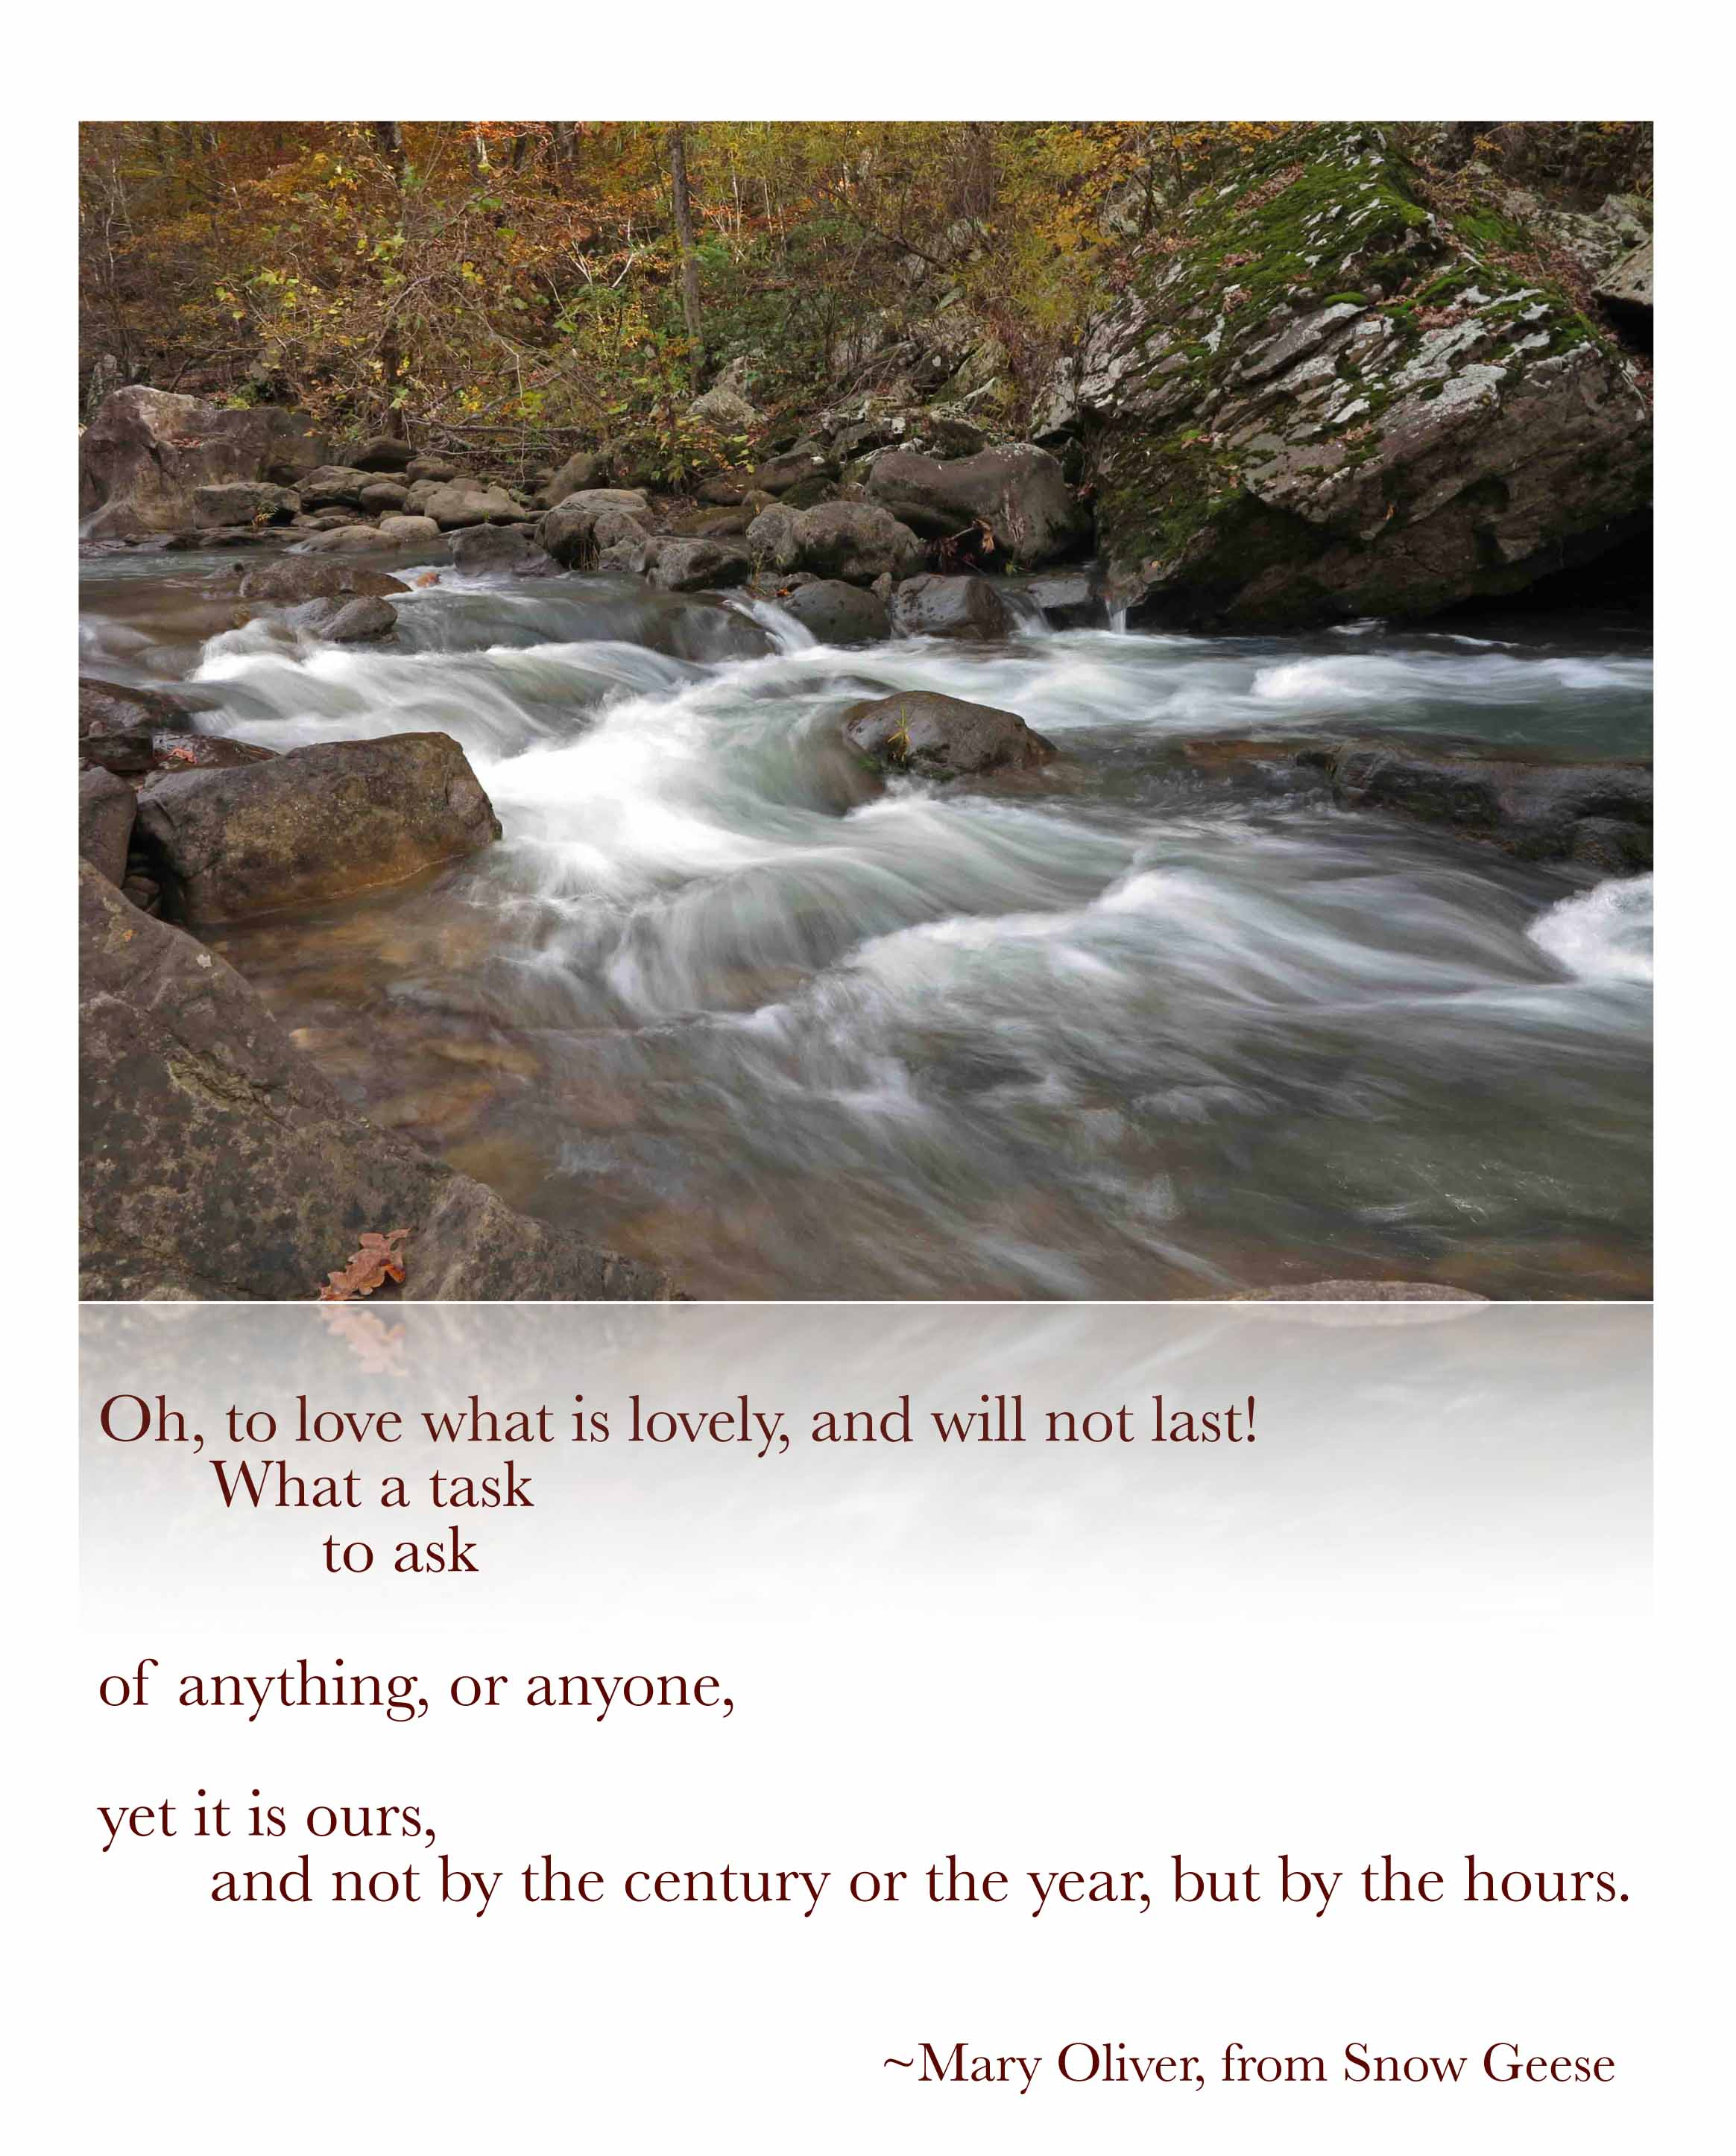 Mary Oliver Ozarkmountainhiker